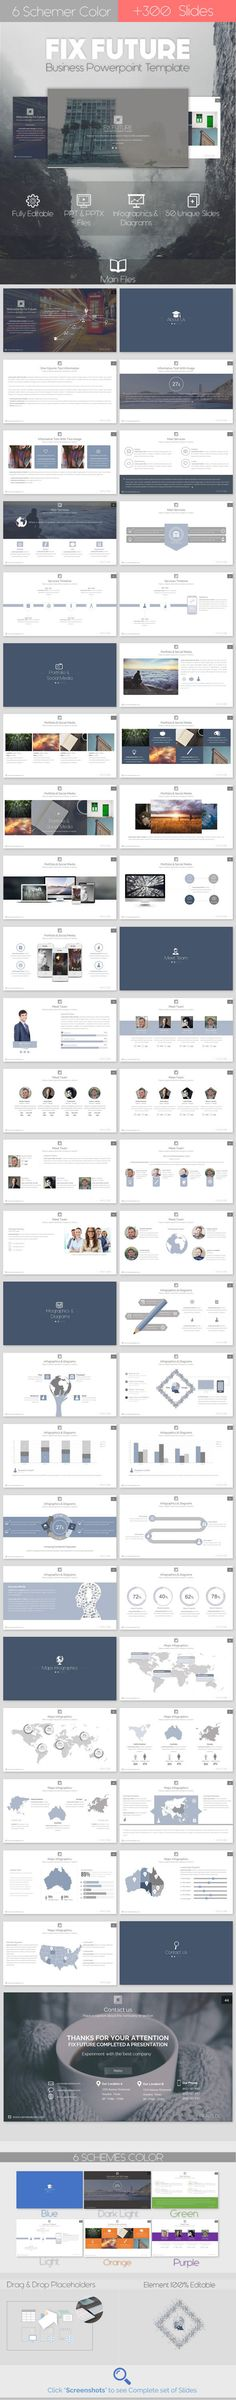 Fix #Future - Powerpoint #Template - #Business #PowerPoint Templates Download here: https://graphicriver.net/item/fix-future-powerpoint-template/11808001?ref=alena994